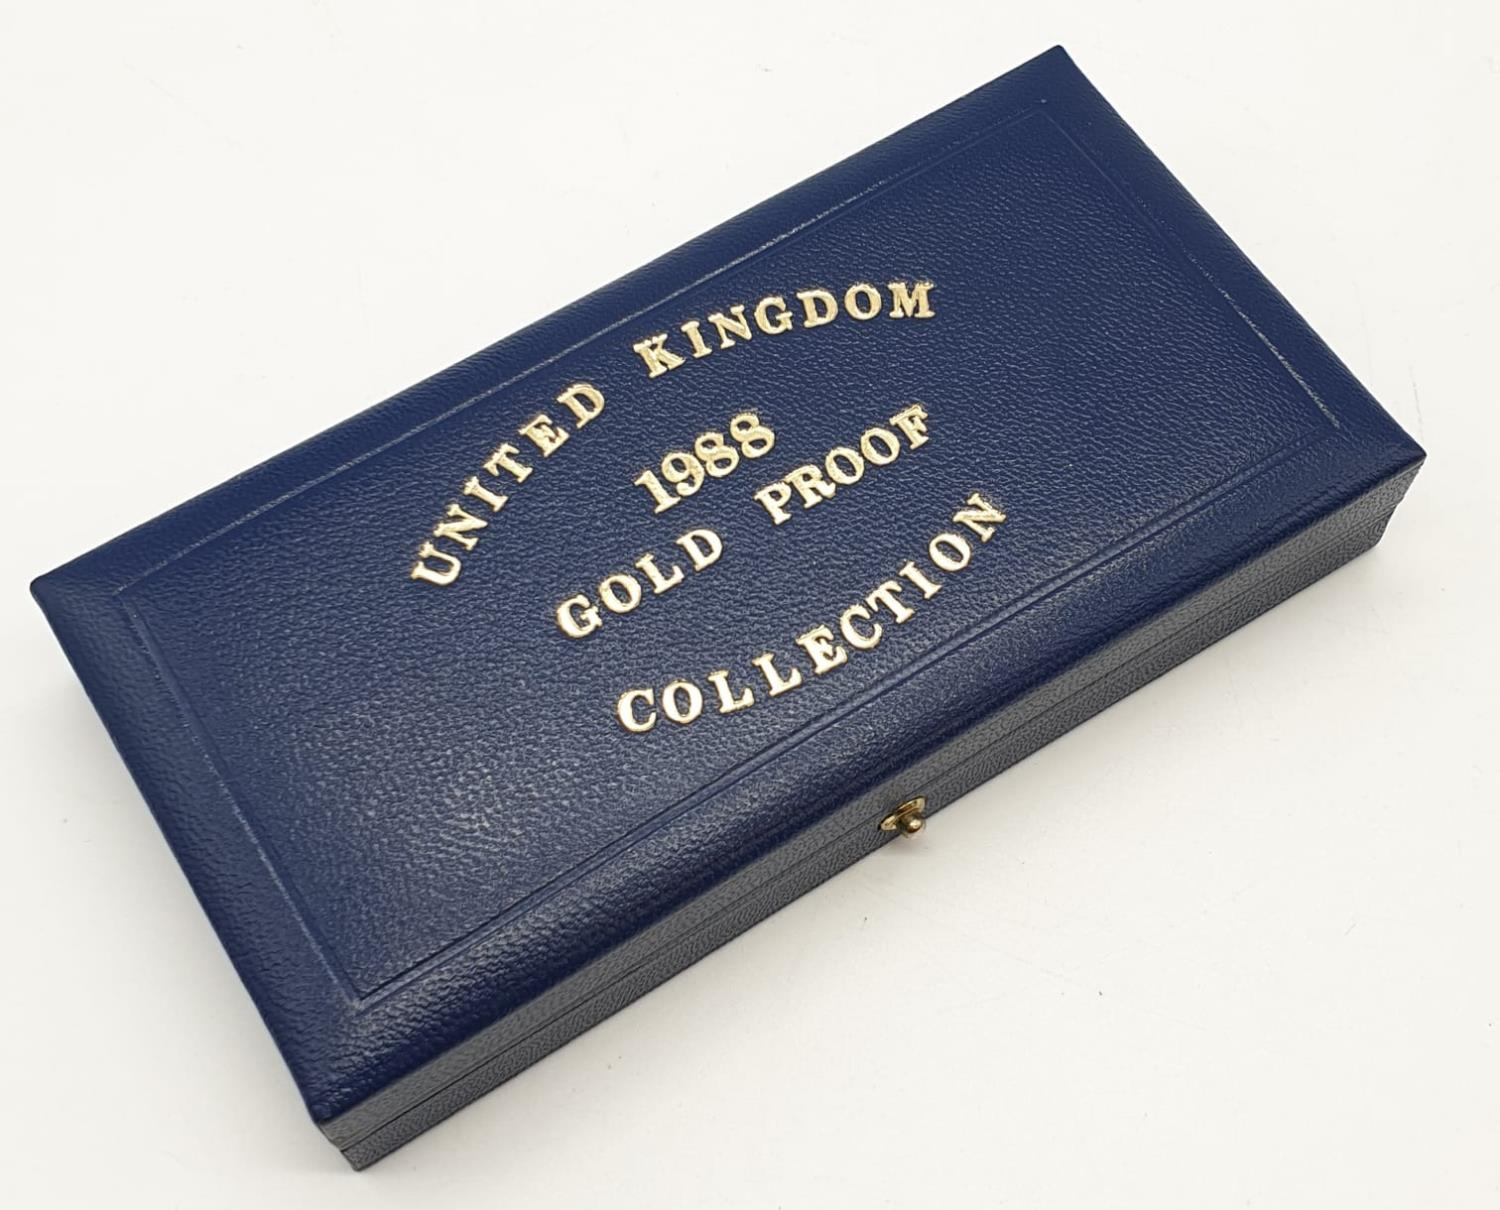 1988 UK GOLD PROOF 3 COIN COLLECTION TO INCLUDE A DOUBLE SOVEREIGN, A SOVEREIGN AND A HALF - Image 6 of 6